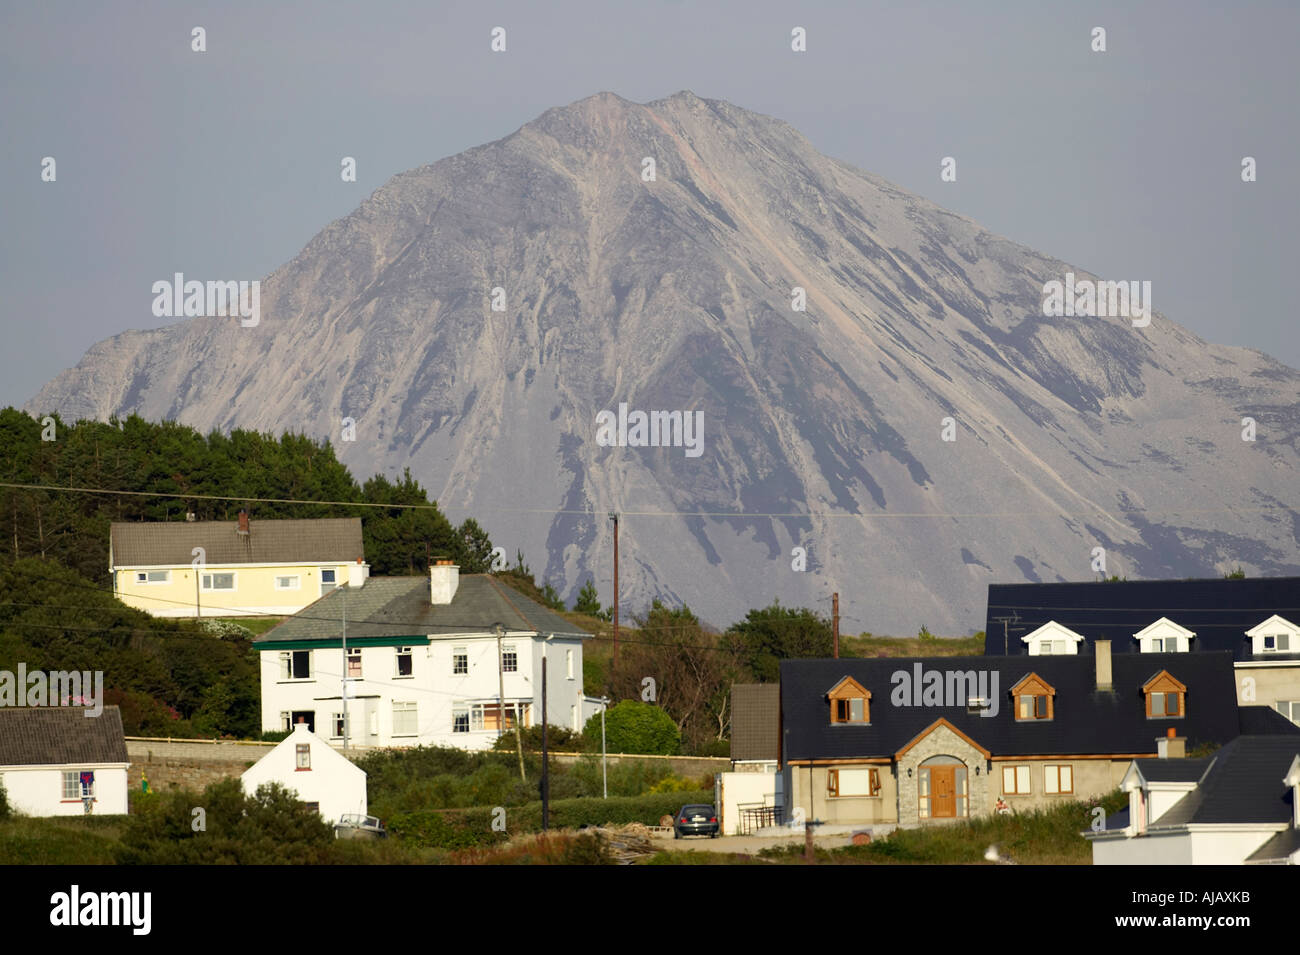 Errigal mountain donegals highest peak with houses in Bunbeg seen from bunbeg beach - Stock Image